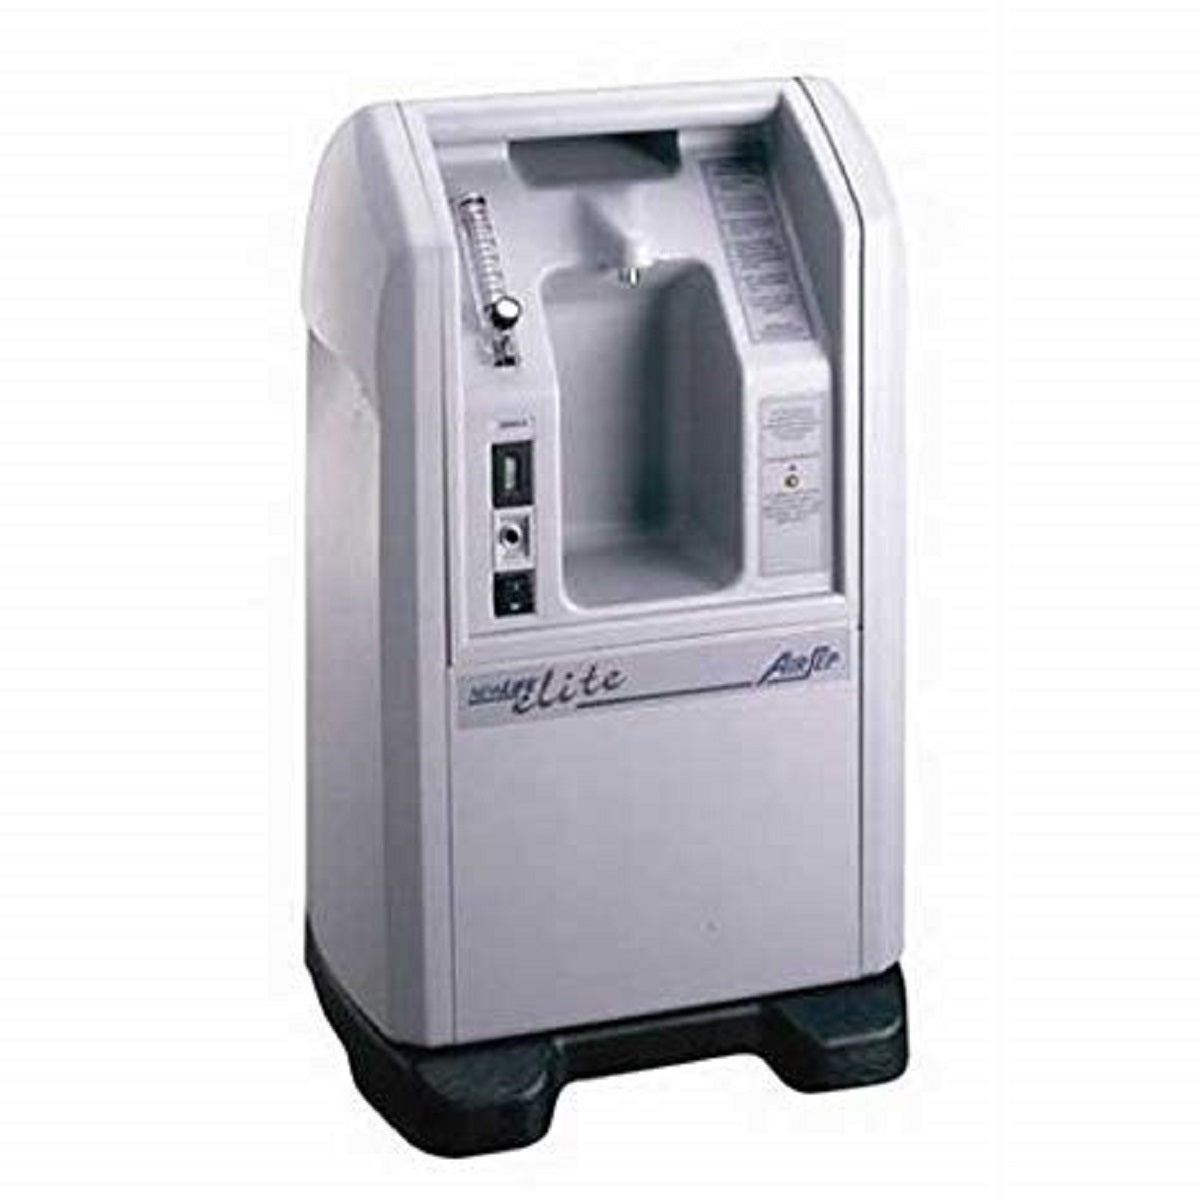 Reconditioned Airsep Intensity 10 LPM 22PSI Oxygen Concentrator